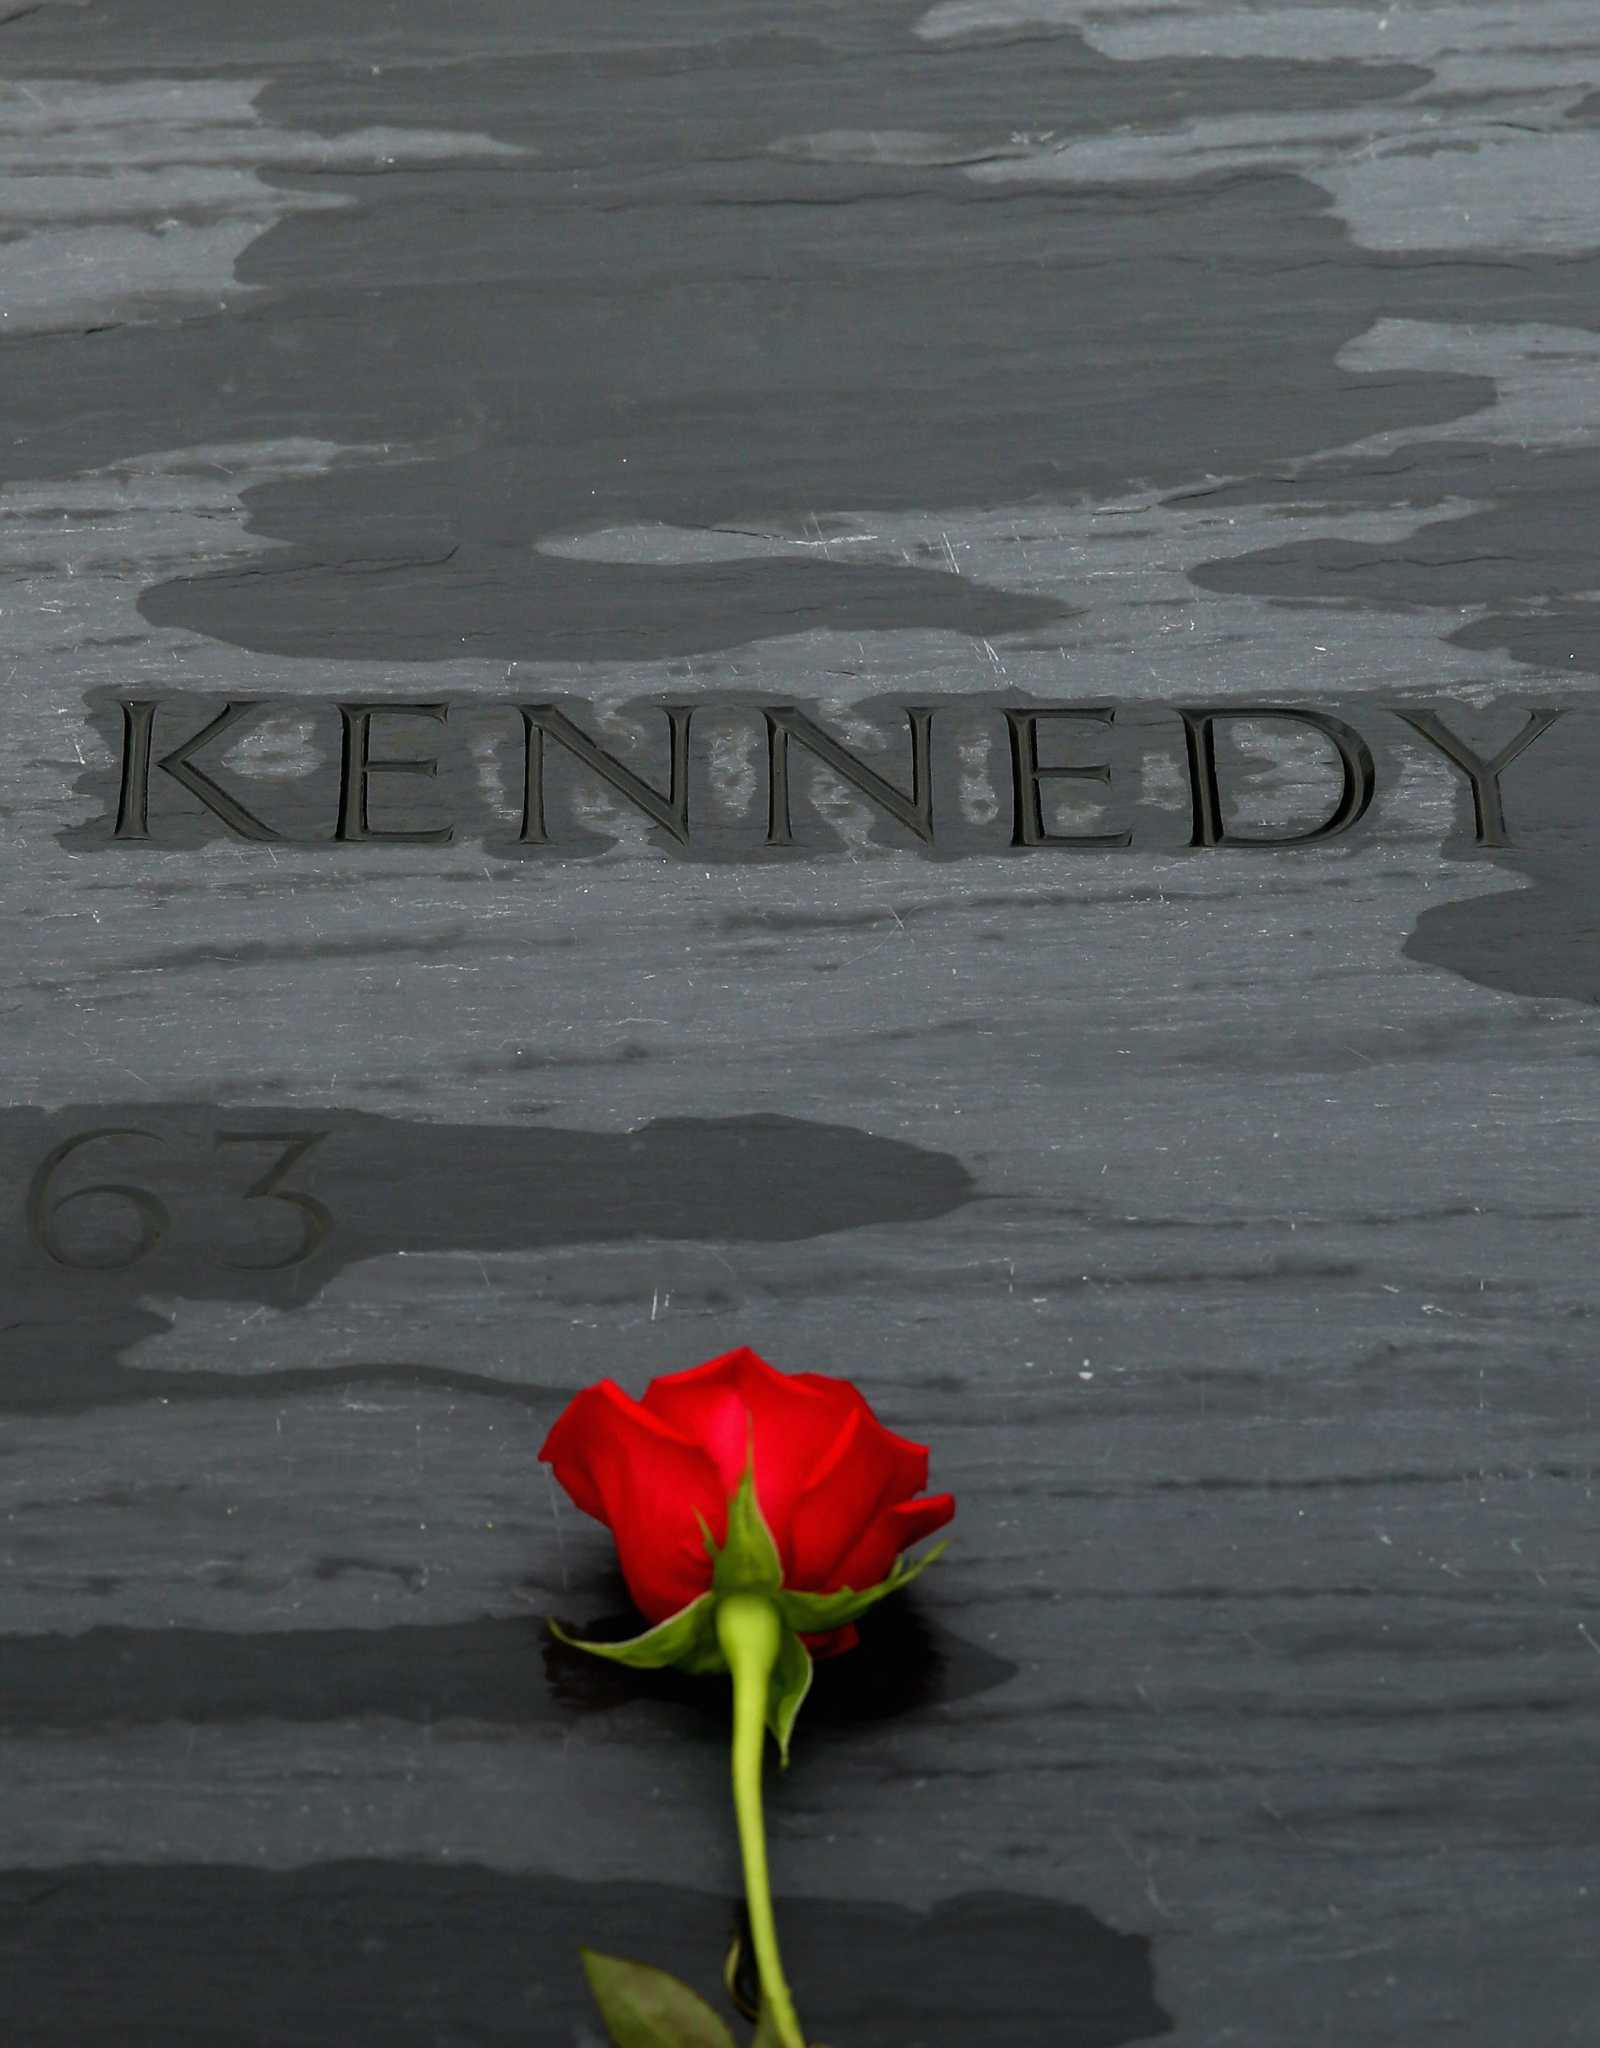 john f kennedy and turning point The legacy of john f kennedy historians tend to rate jfk as a good president, not a great one but americans consistently give him the highest approval rating of.